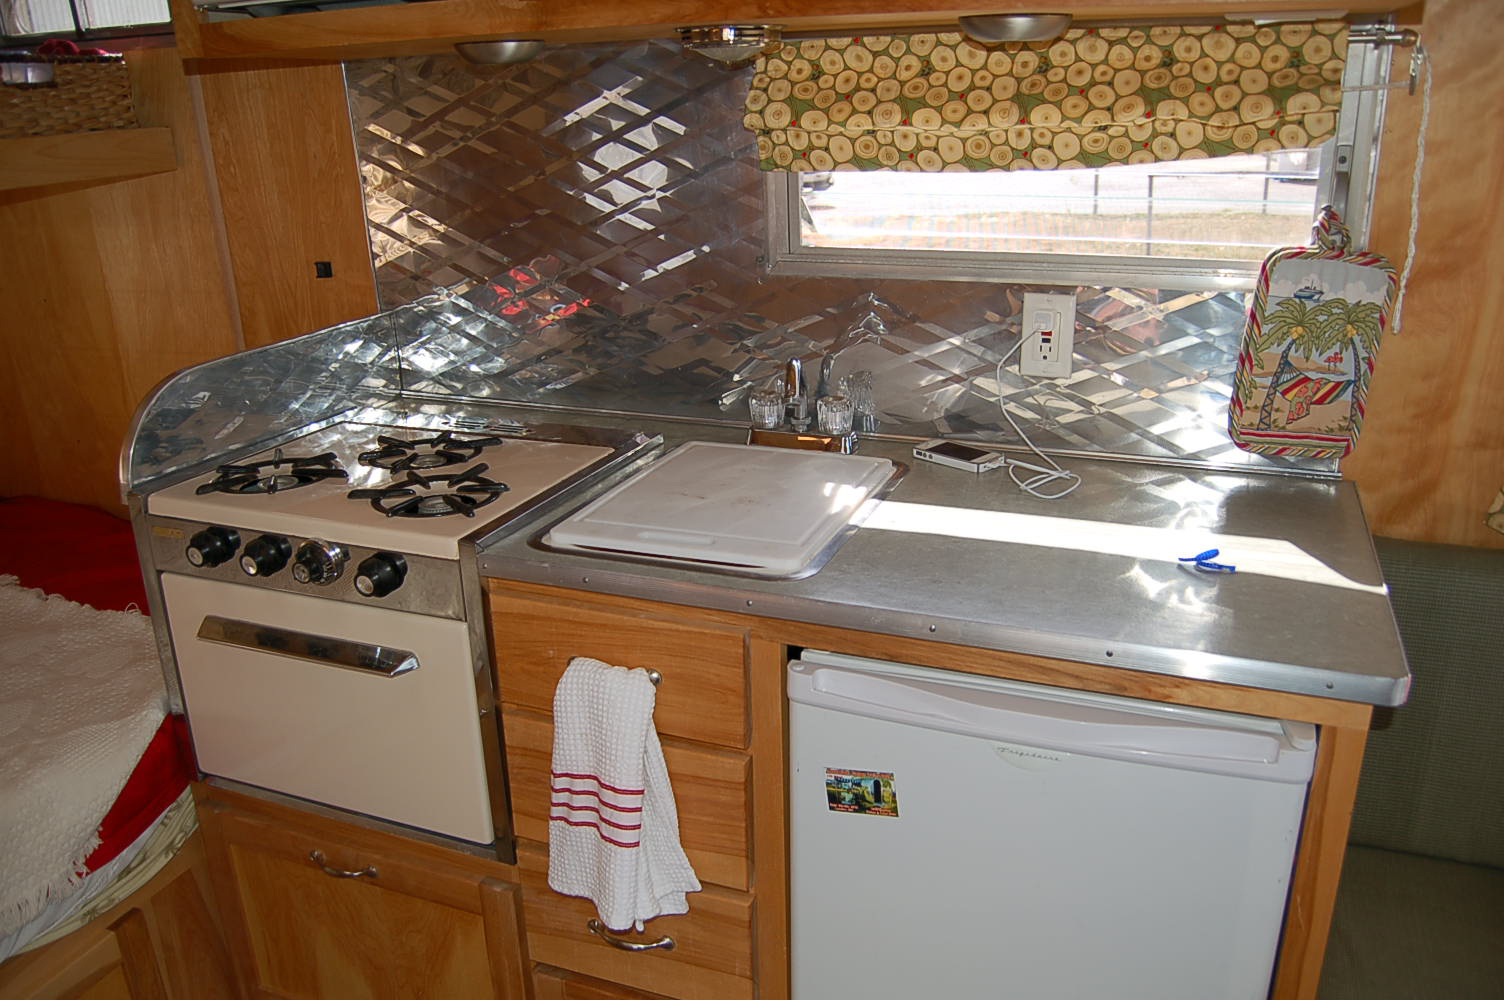 vintage aloha trailer pictures rv kitchen cabinets Beautiful kitchen countertop stove and cabinets in vintage Aloha travel trailer